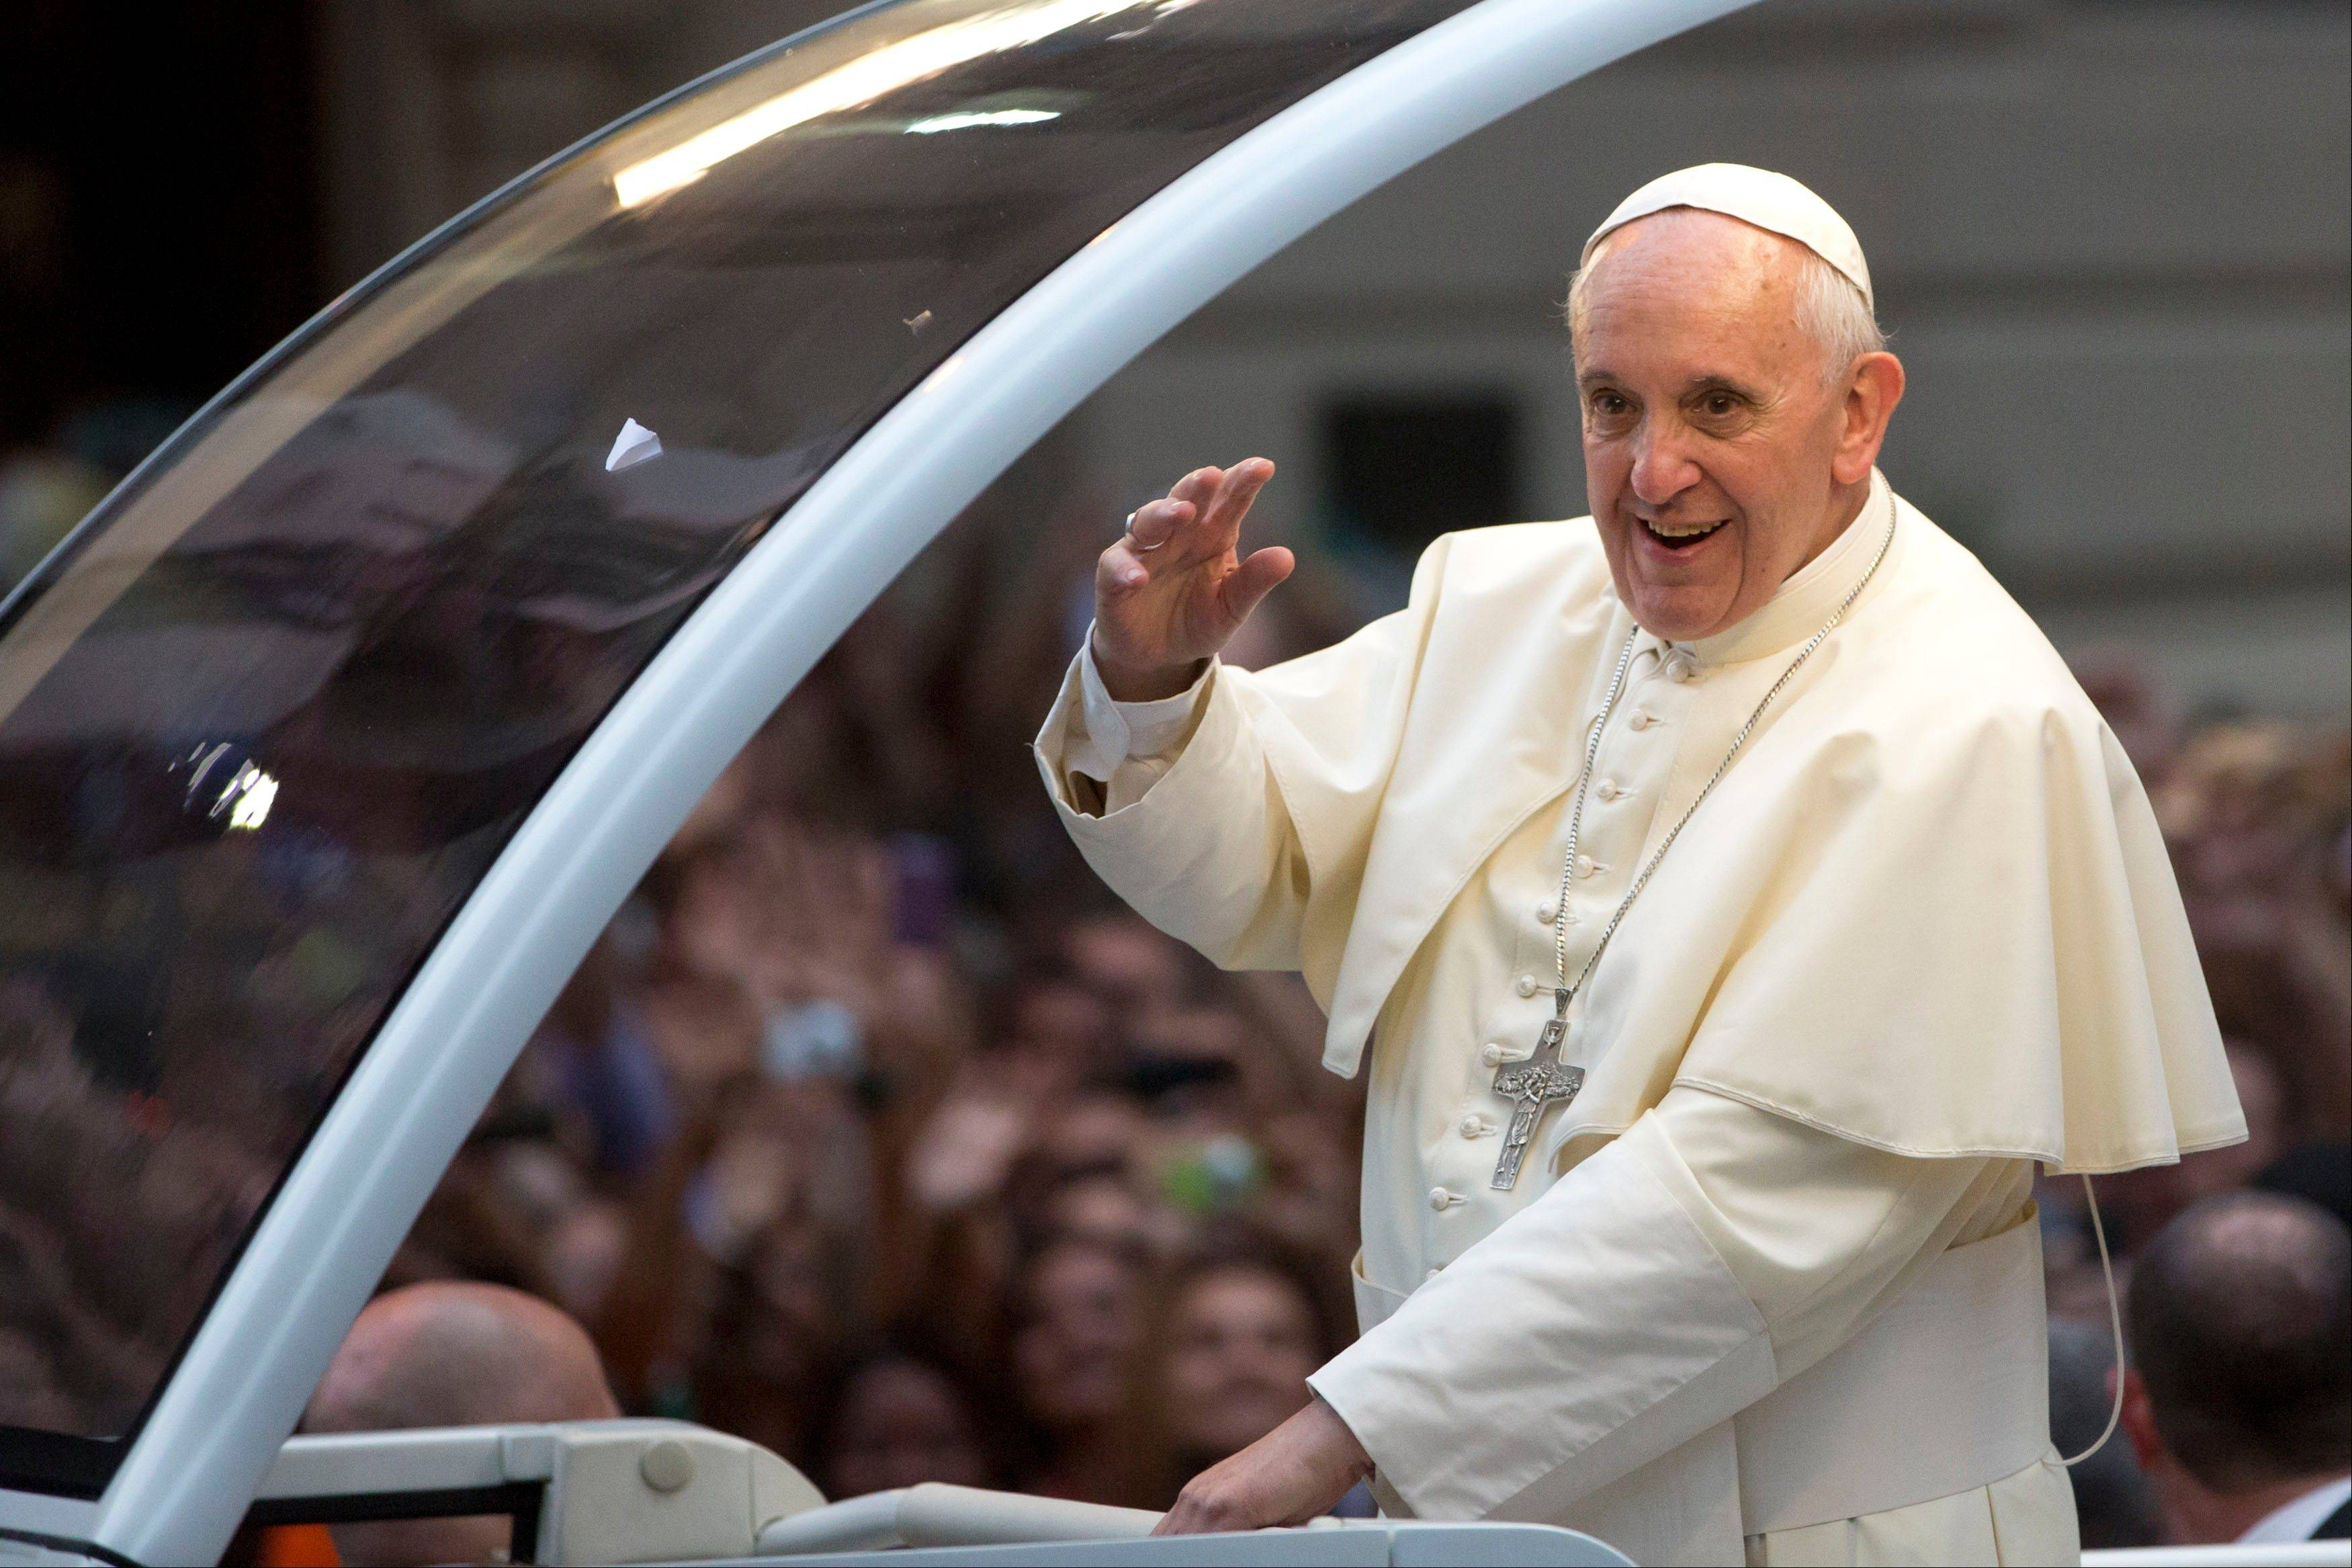 Pope Francis waves from his popemobile as he makes his way into central Rio de Janeiro, Brazil, Monday, July 22, 2013. The pontiff arrived for a seven-day visit in Brazil, the world�s most populous Roman Catholic nation. During his visit, Francis will meet with legions of young Roman Catholics converging on Rio for the church�s World Youth Day festival.